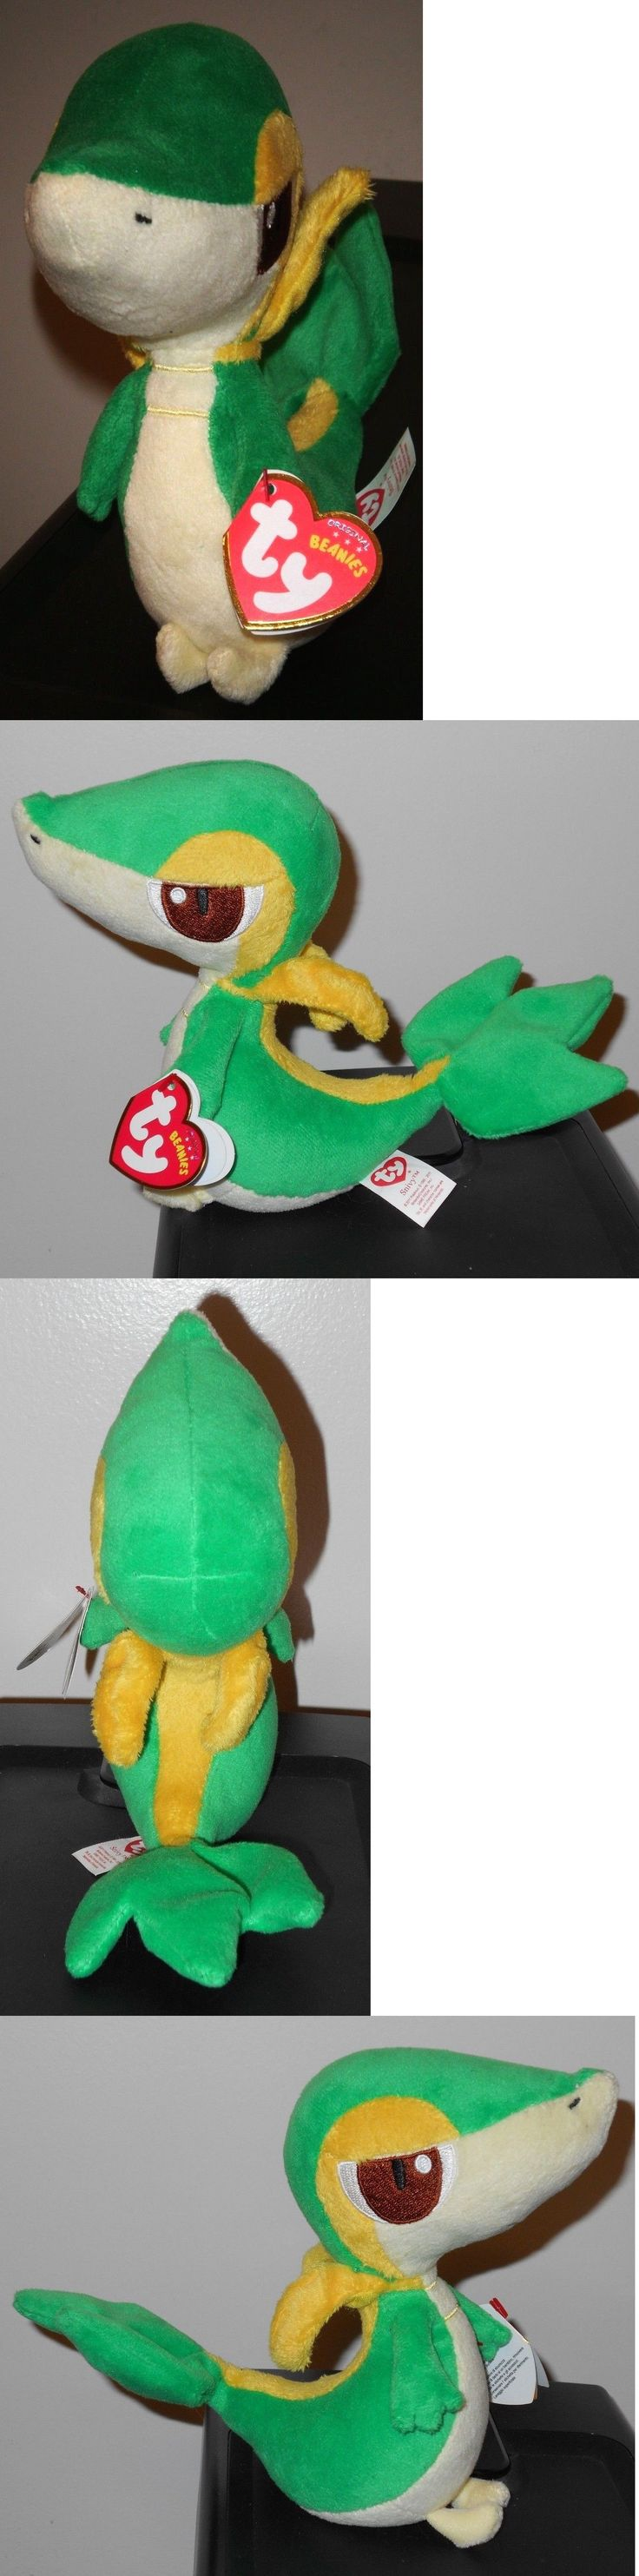 Current 438: Ty Snivy Pokemon Beanie Baby - Mint With Mint Tags - Uk Exclusive 6 Inch ~ Vhtf -> BUY IT NOW ONLY: $79.95 on eBay!